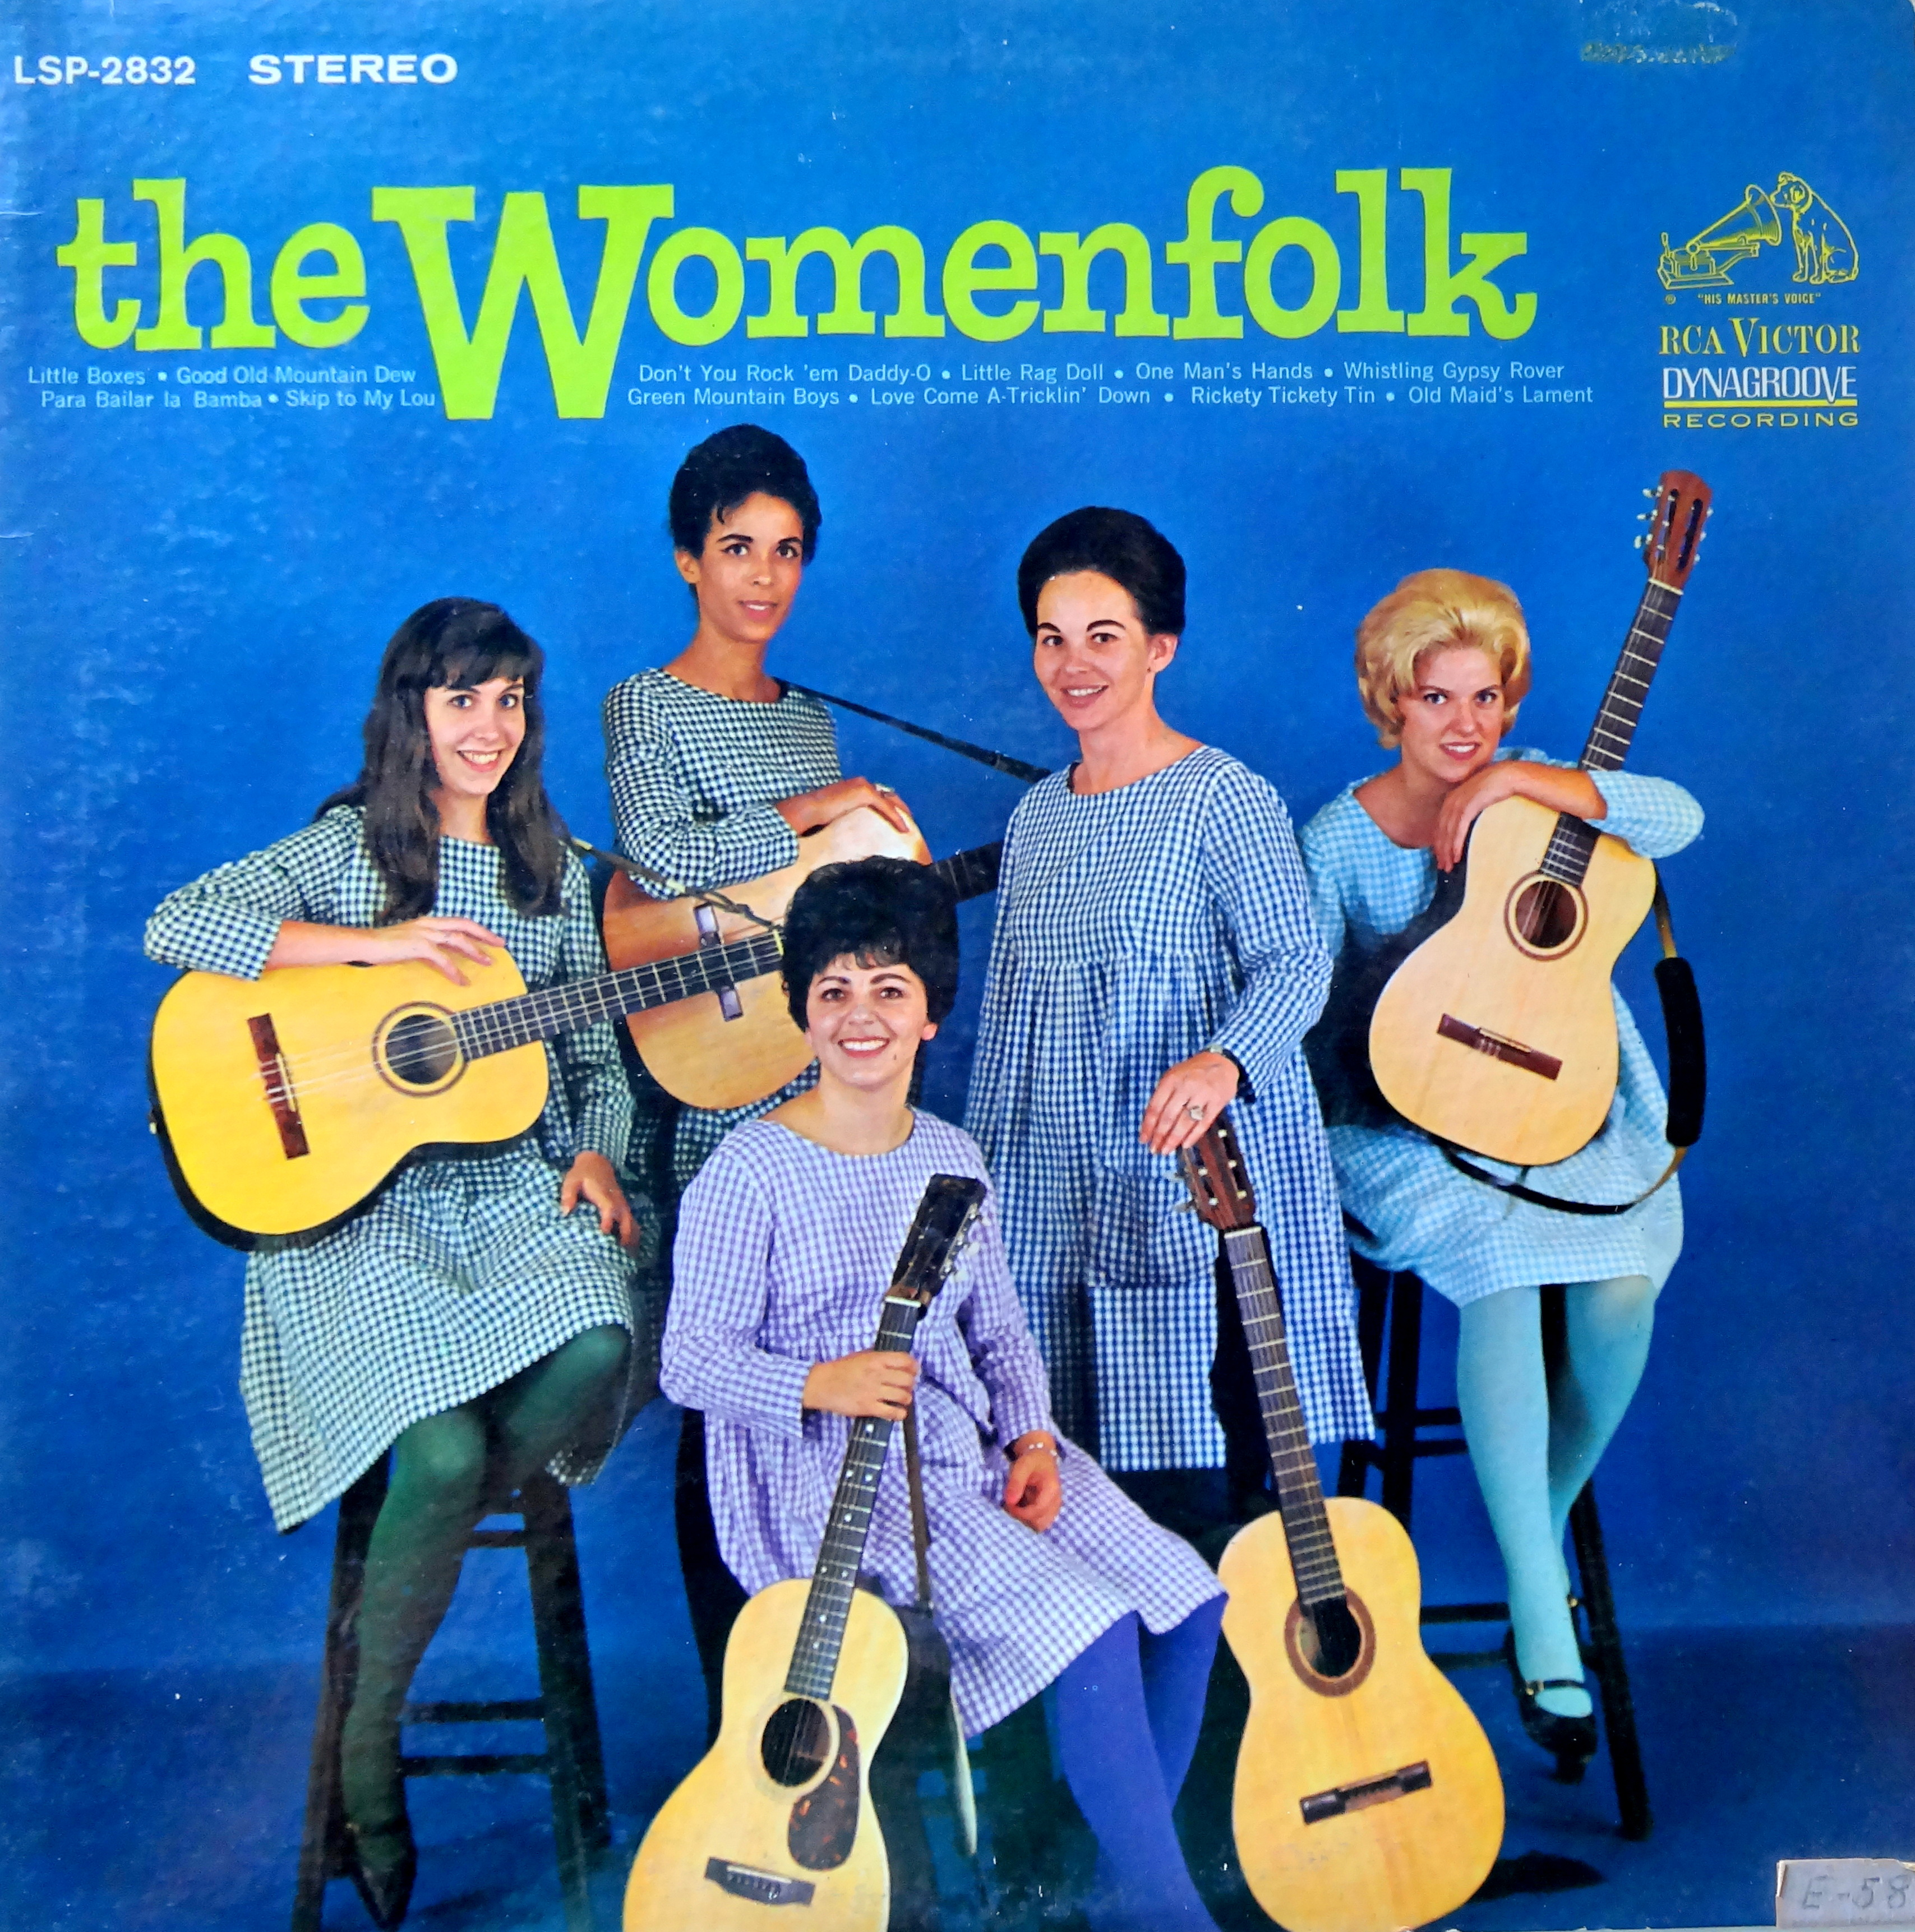 From The Stacks: The Womenfolk (Self-Titled) – Why It Matters